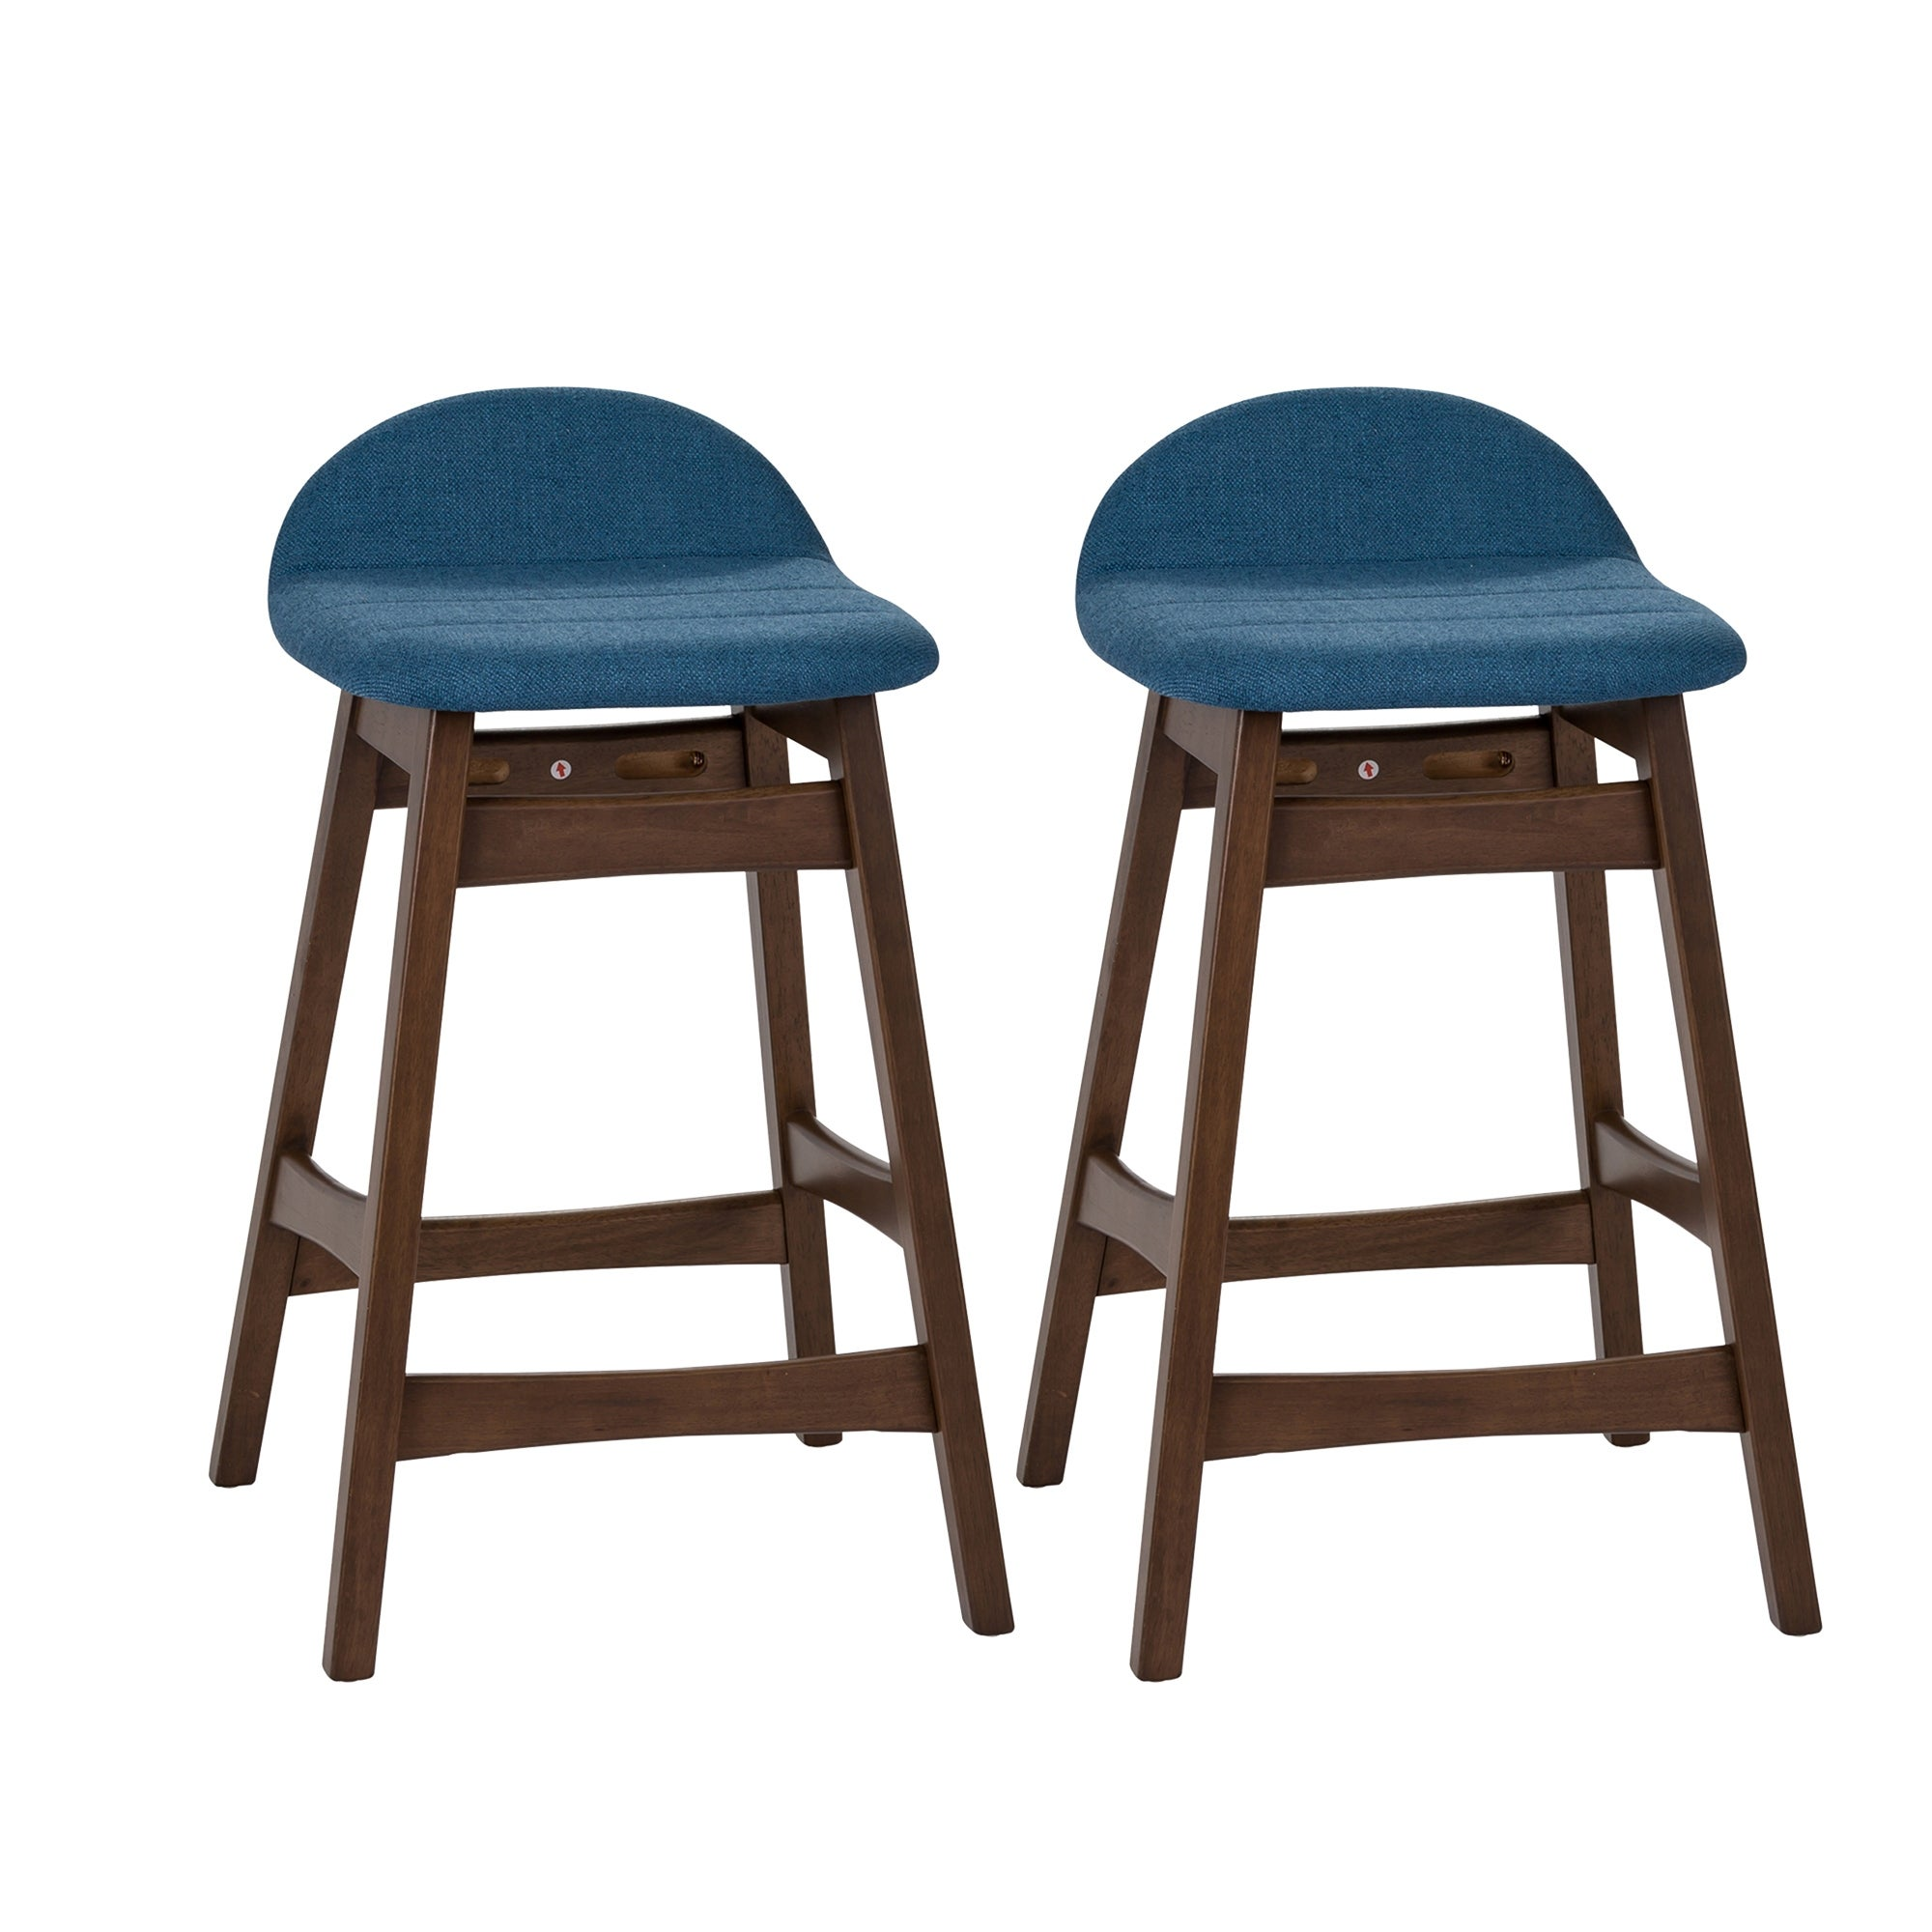 Image of: Shop Black Friday Deals On Space Savers Modern Upholstered 24 Inch Counter Height Barstool Set Of 2 Overstock 17429251